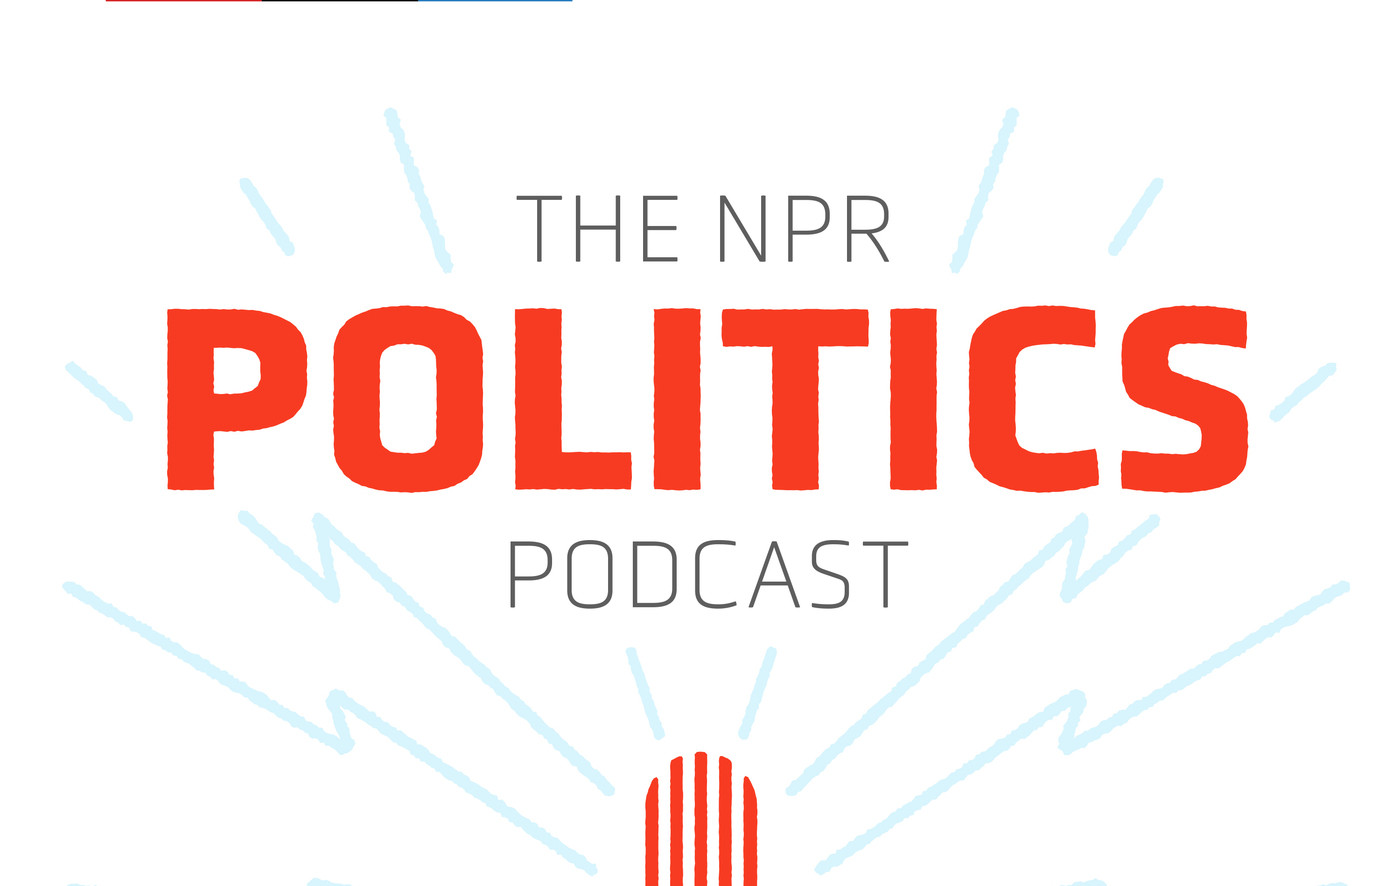 NPR: Why I'm Not Voting For Trump or Clinton